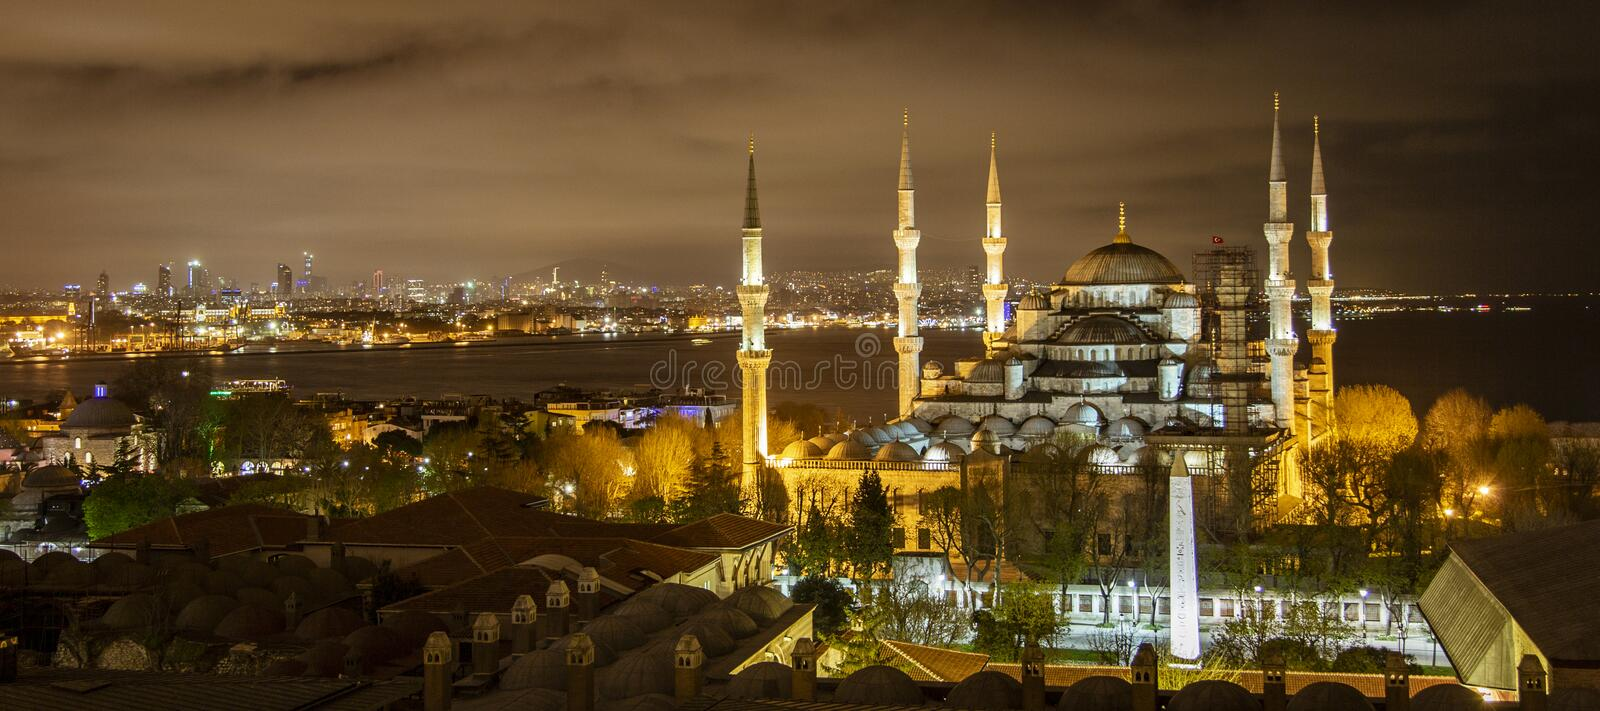 Blue Mosque in Istanbul at night. Blue Mosque in Istanbul, Turkey at night stock photo